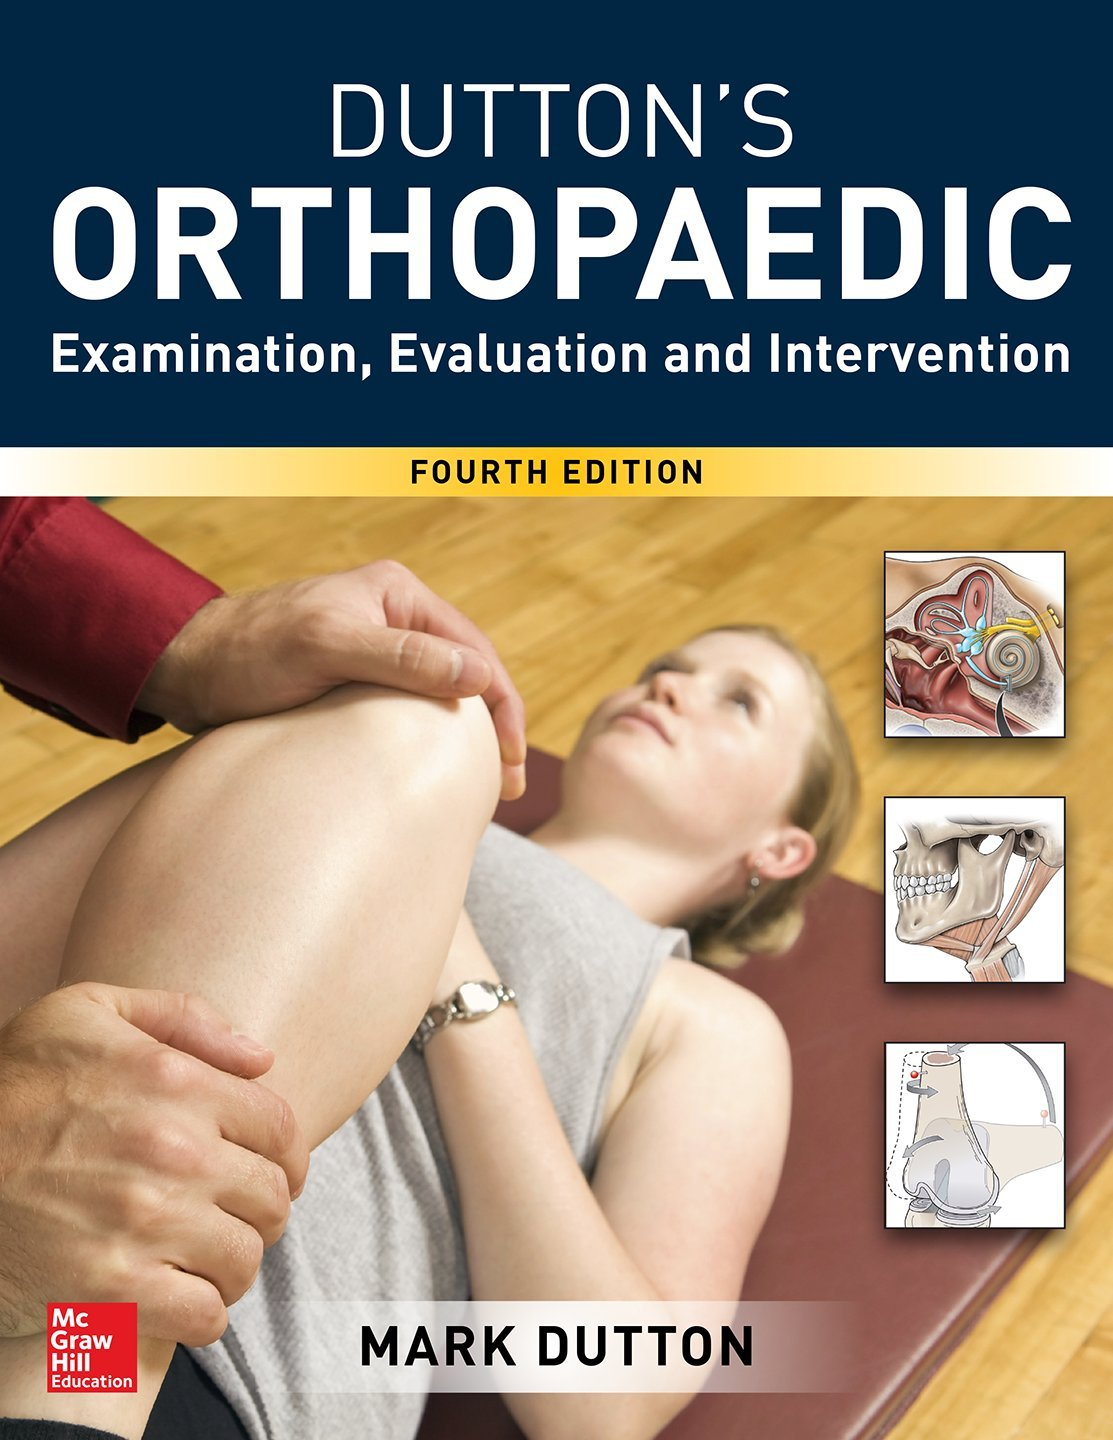 Dutton's Orthopaedic: Examination, Evaluation and Intervention, Fourth Edition